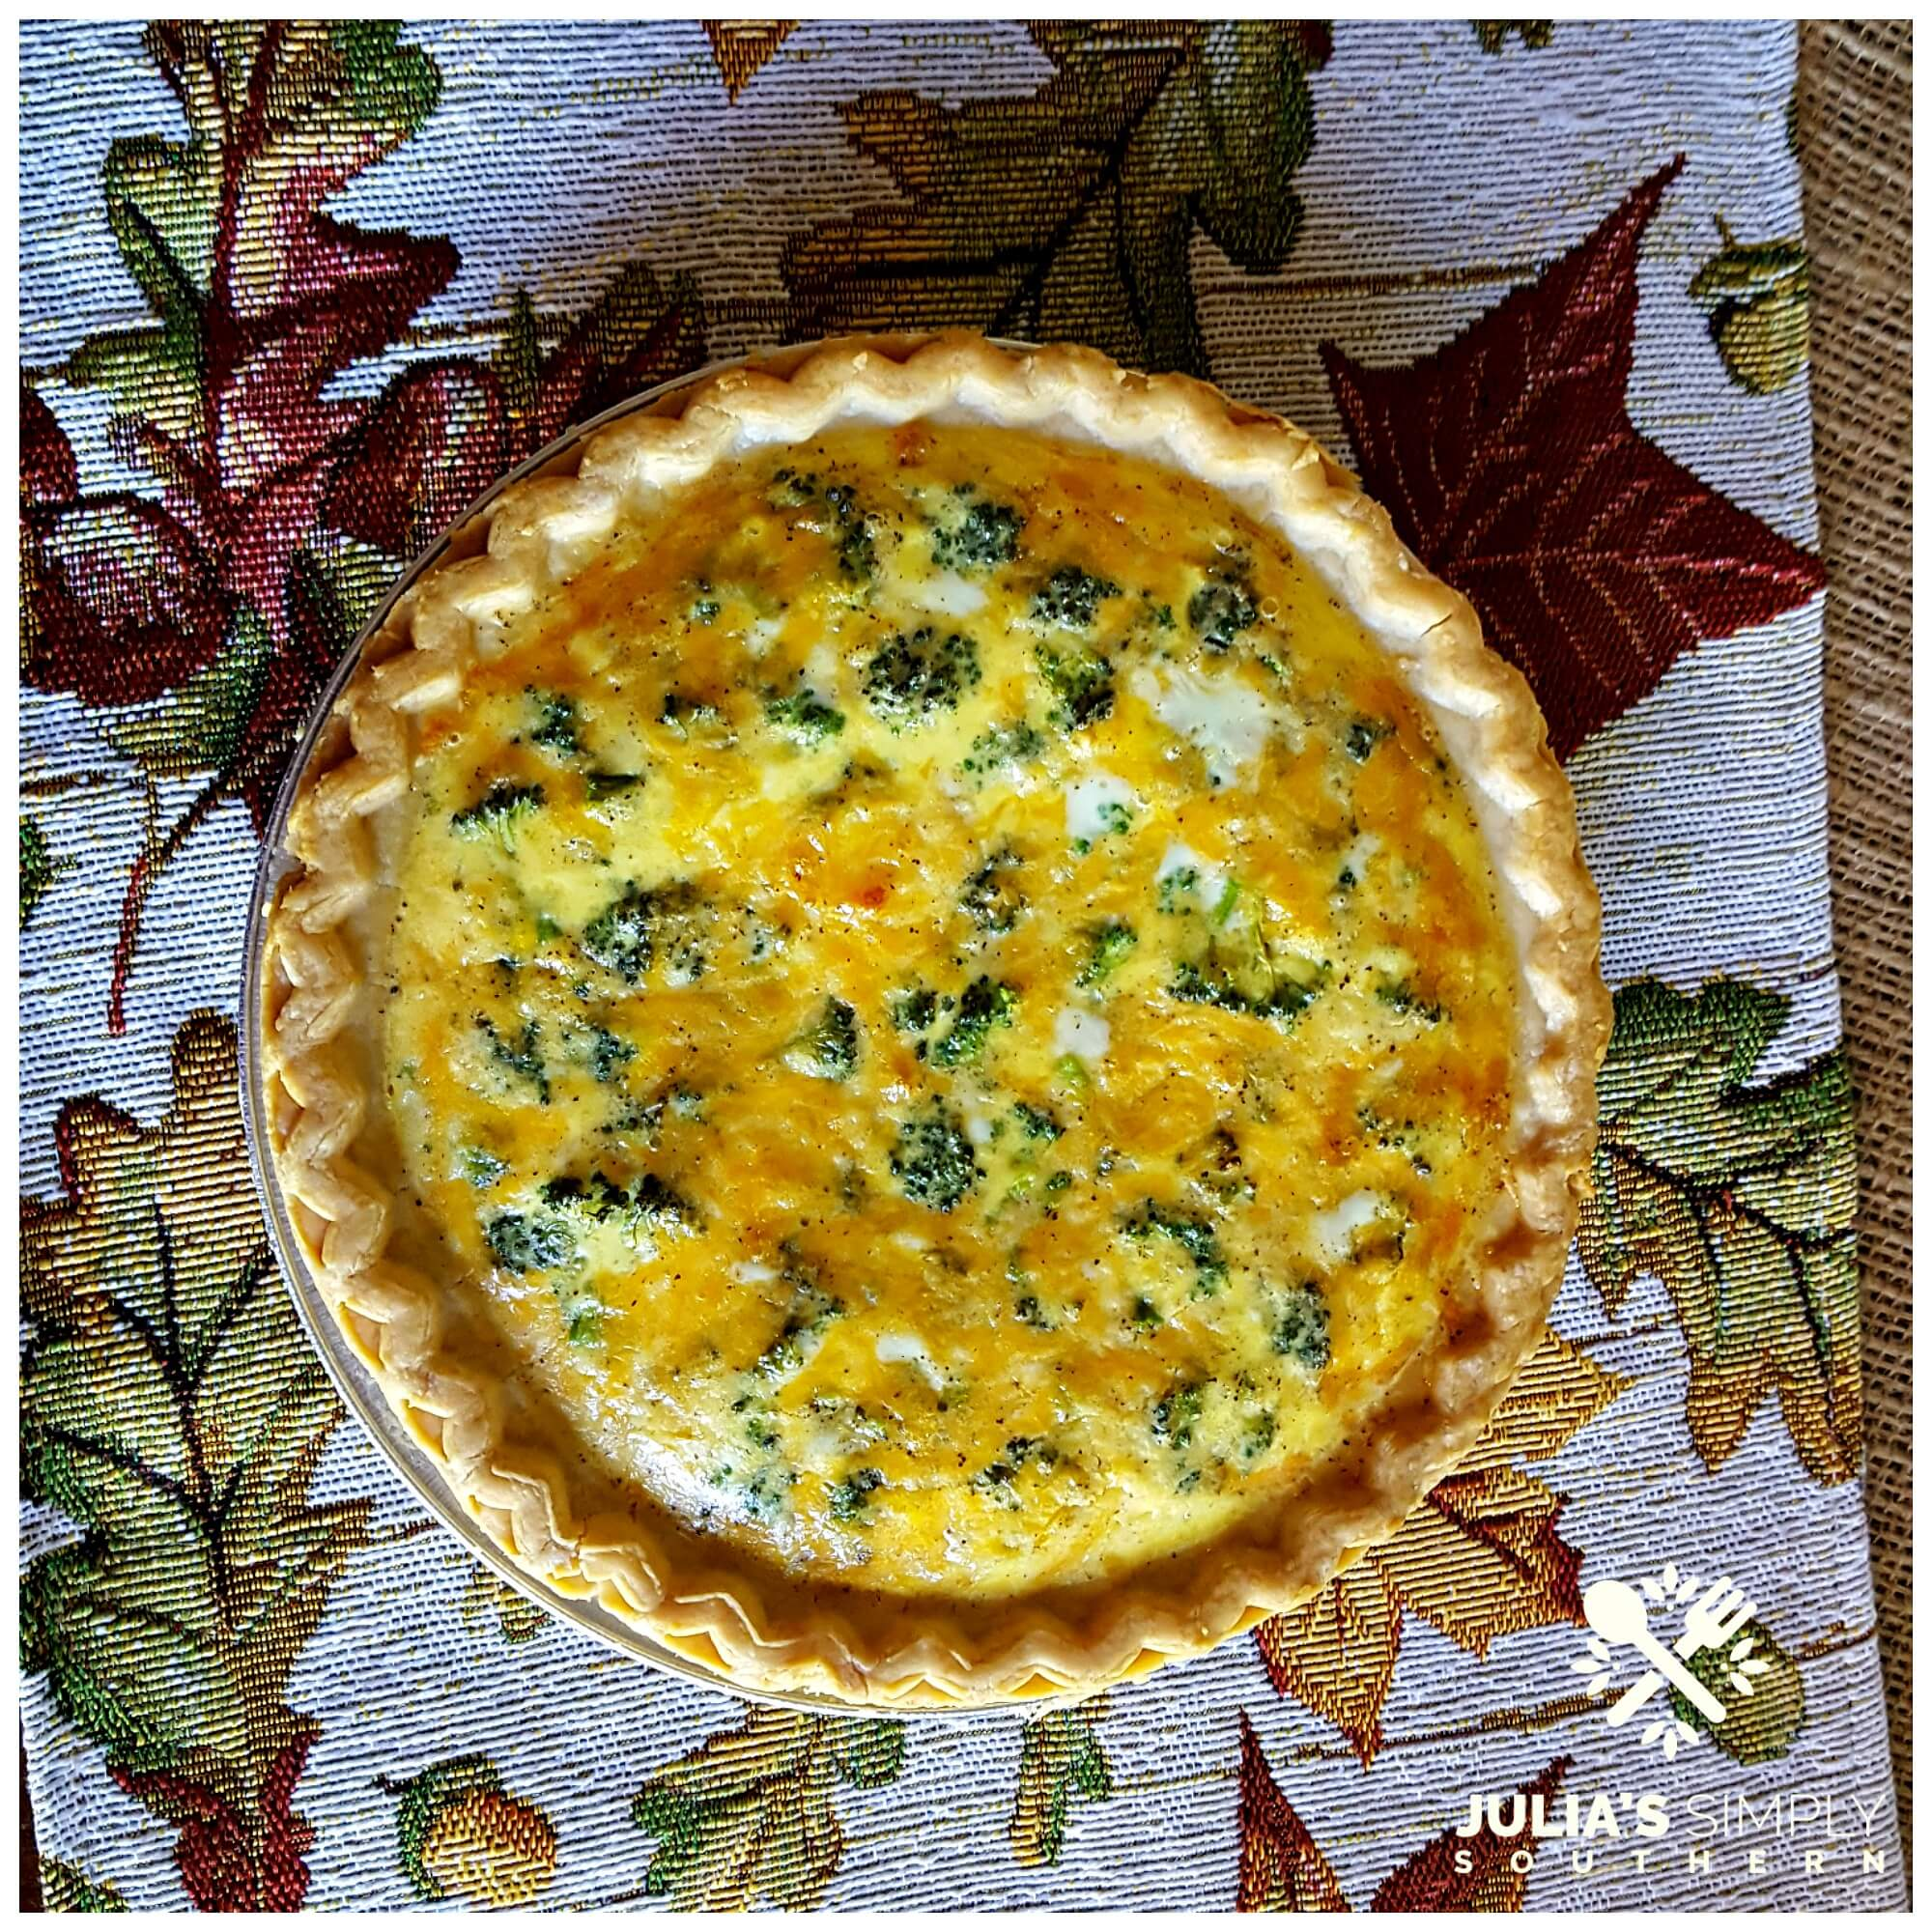 Broccoli and Cheddar Cheese Quiche in a store bought pie shell